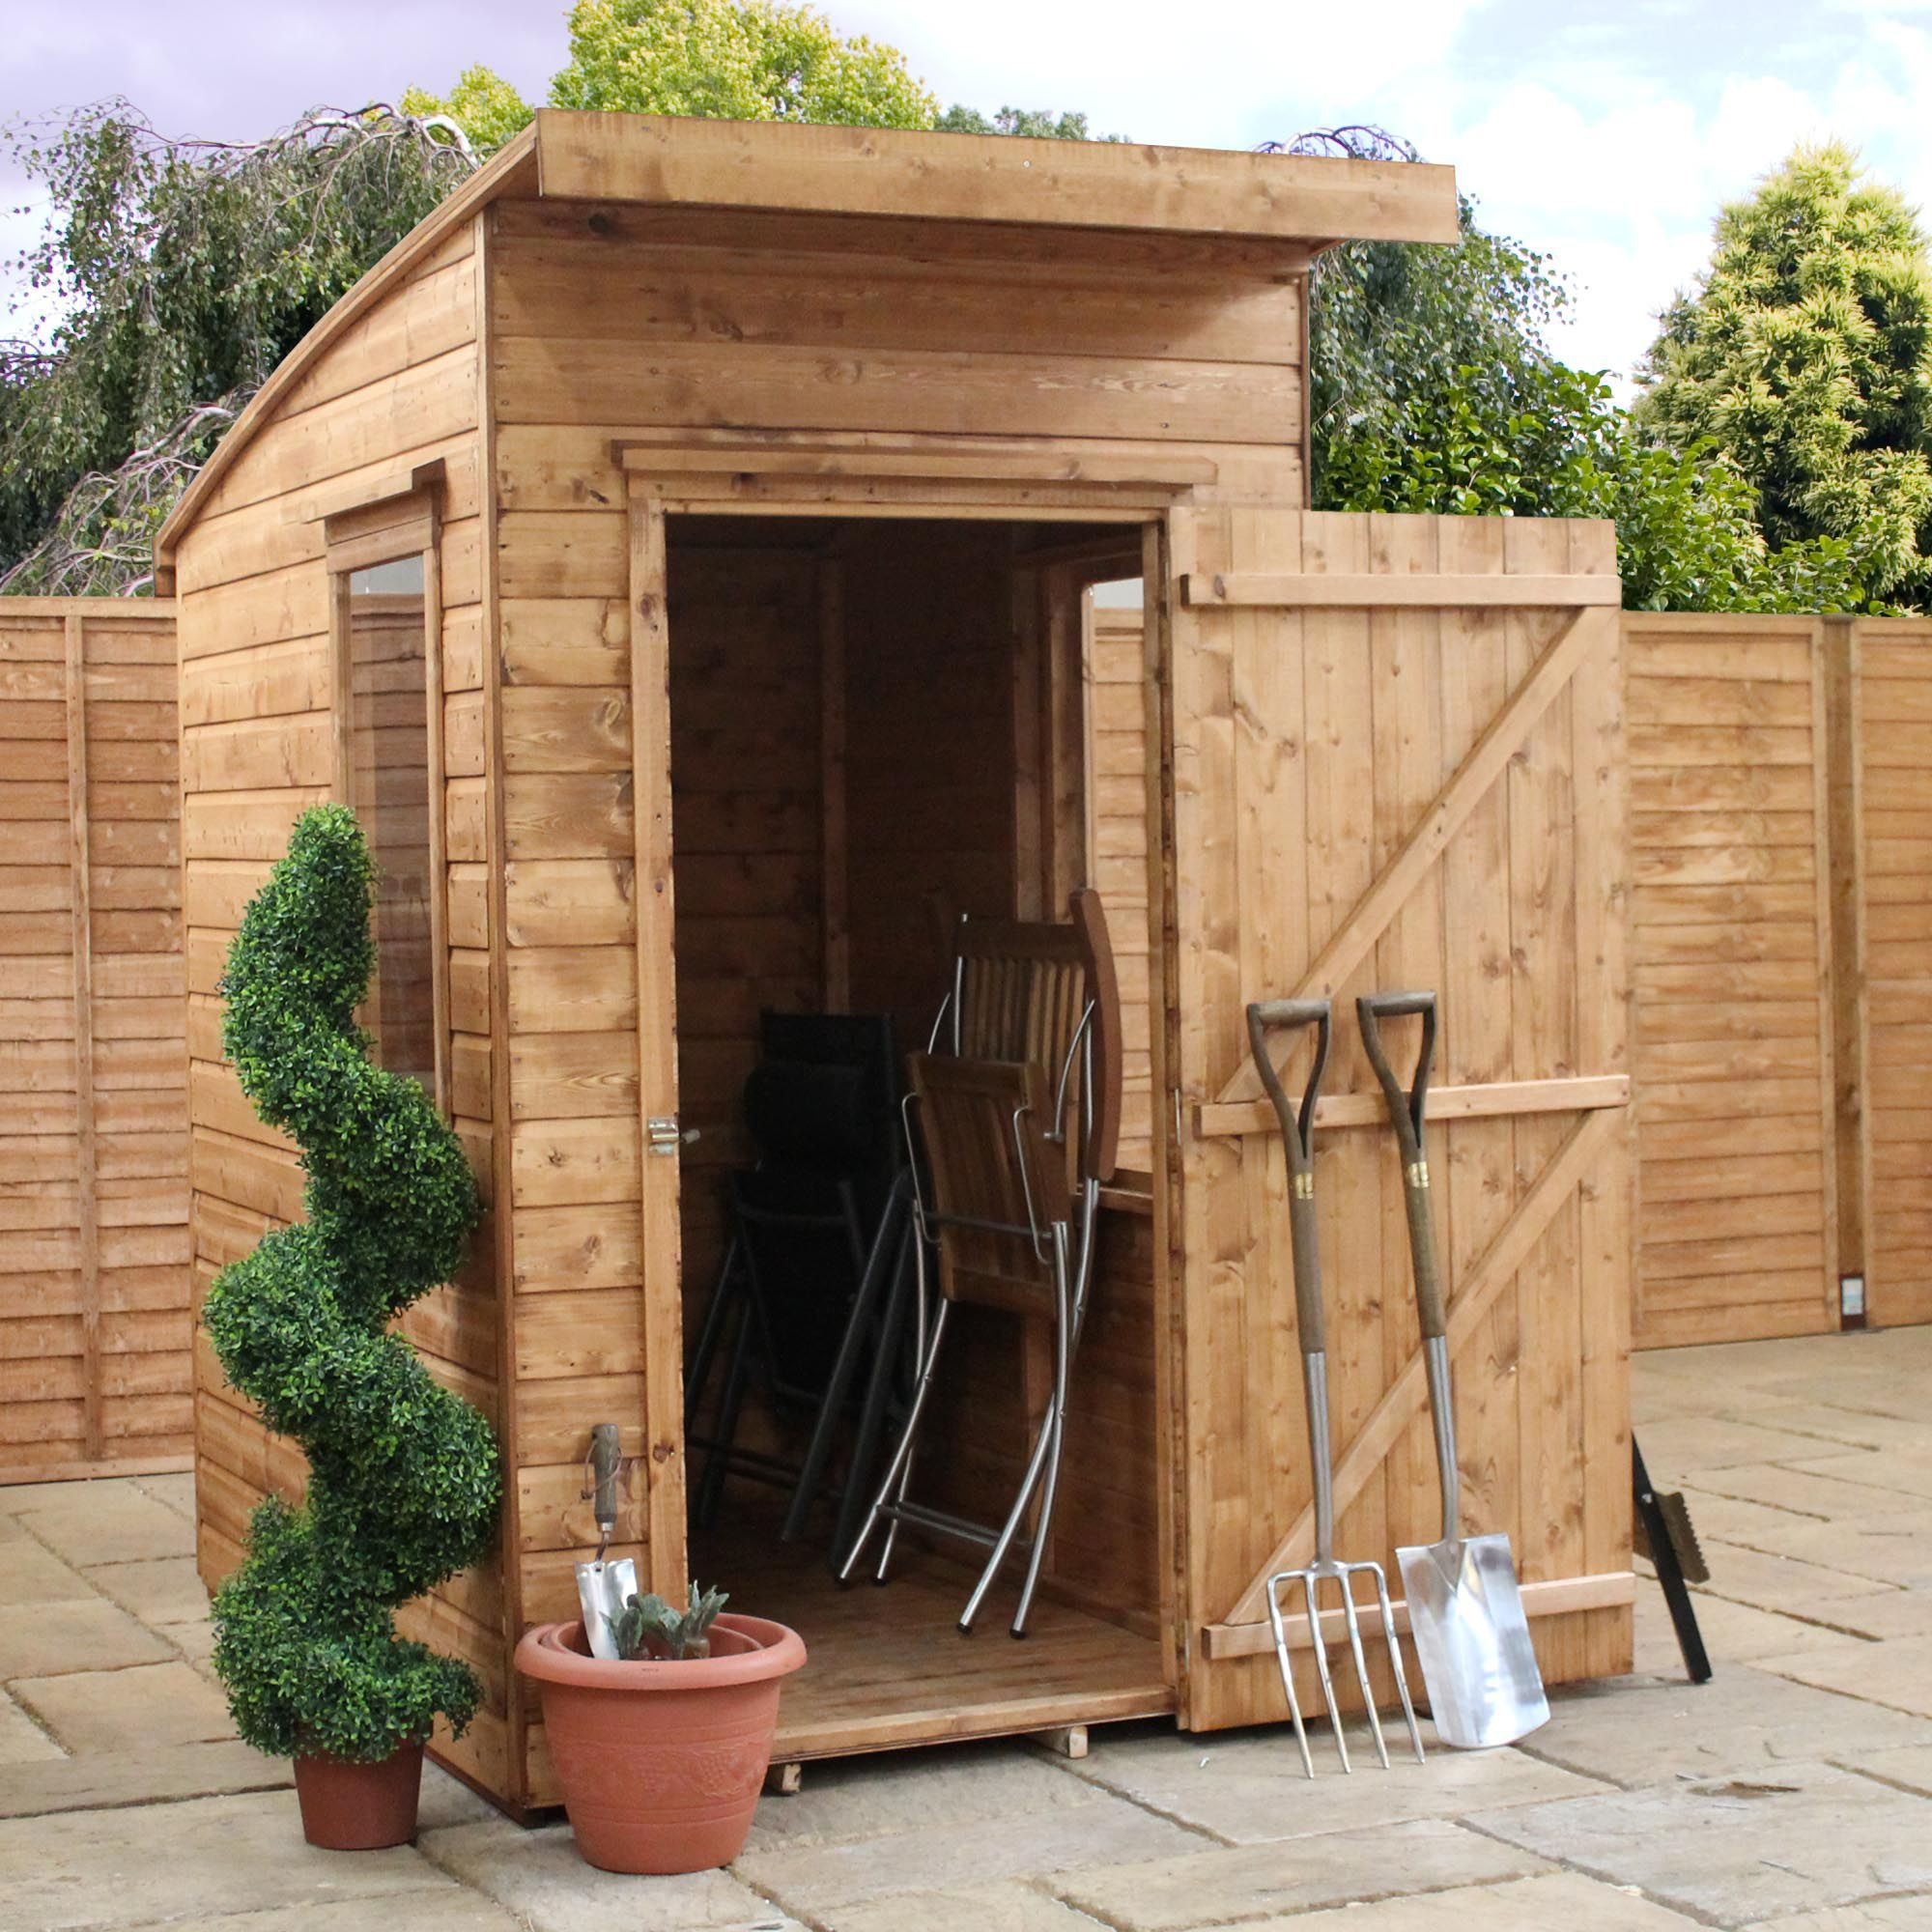 6x4 aero curved roof shiplap wooden shed departments tradepoint - Garden Sheds 6x4